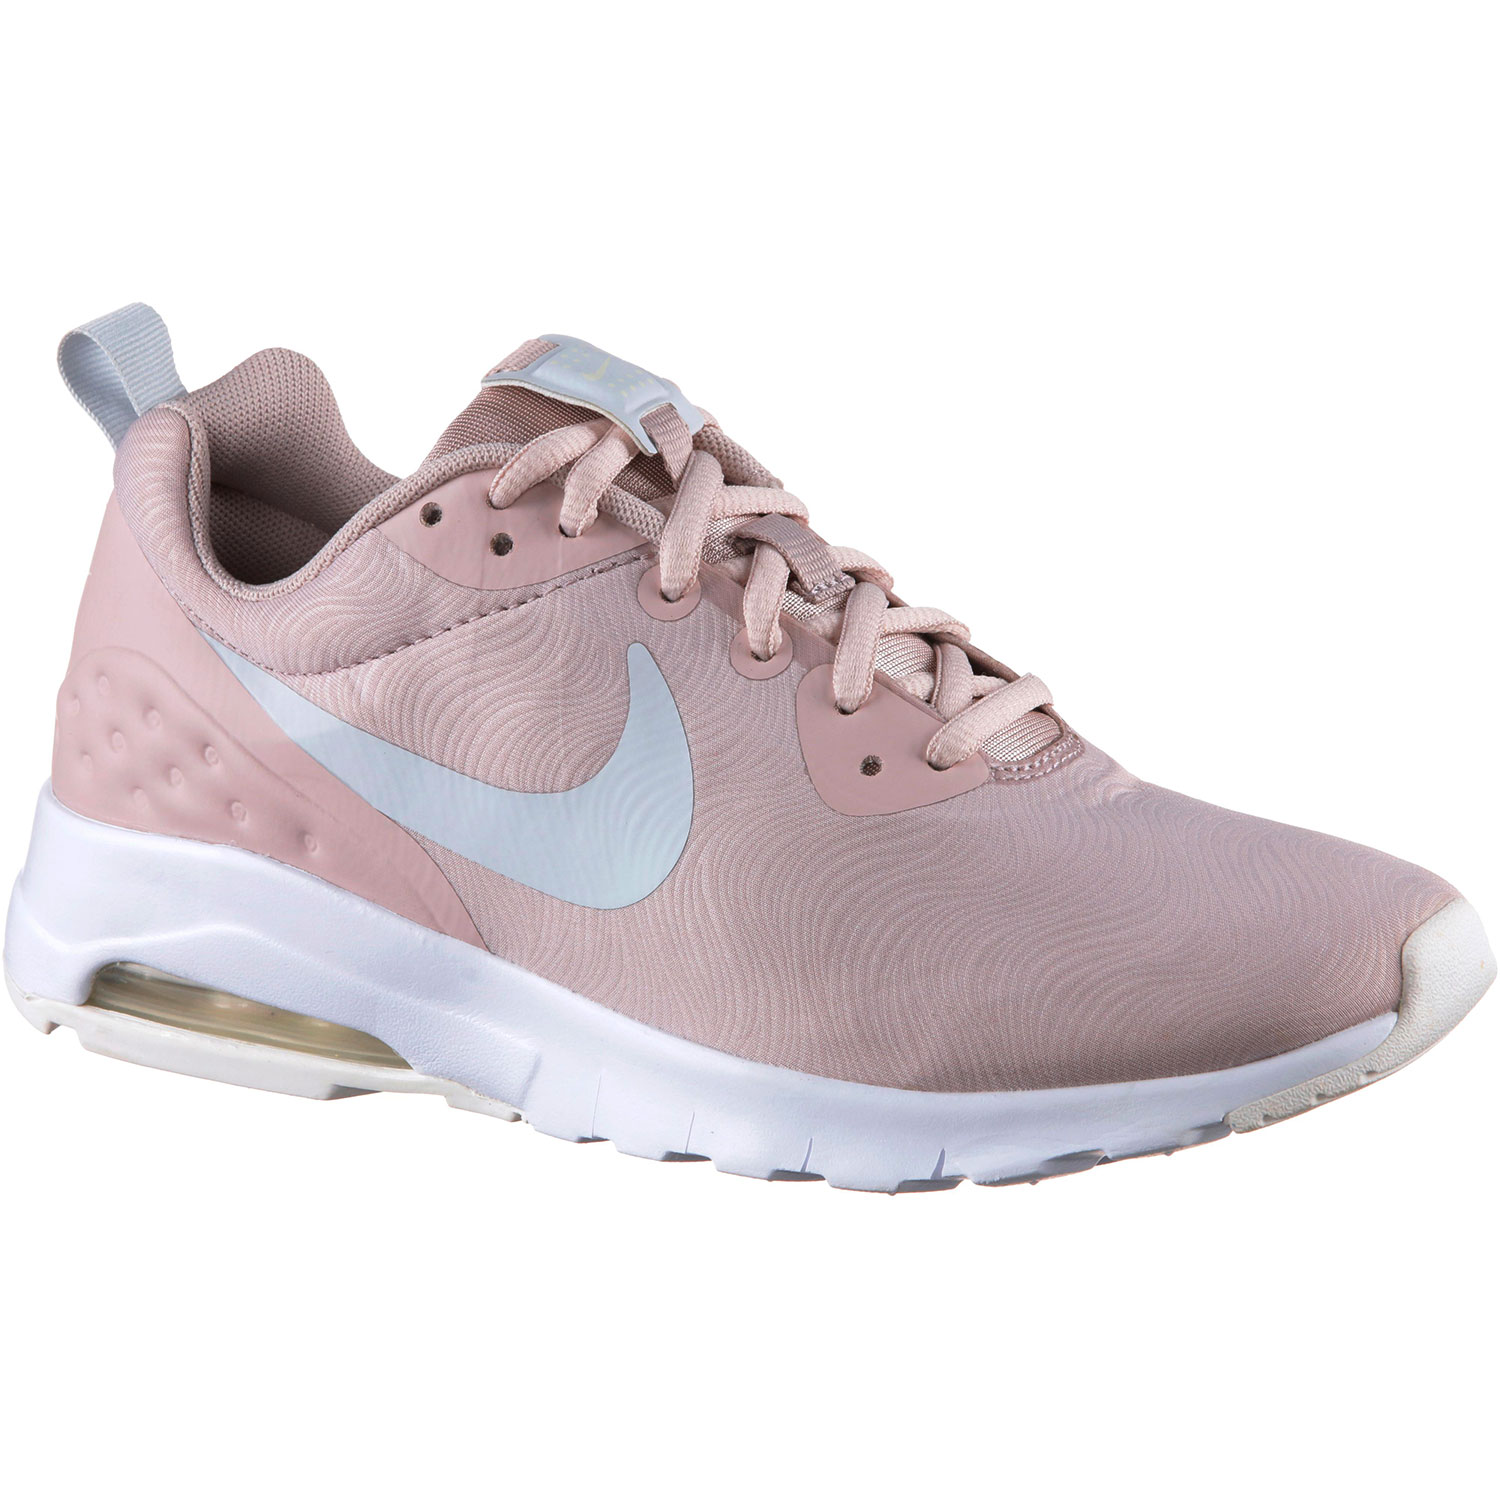 Nike WMNS Air Max Motion LW SE Damen Sneaker particle rose 844895 604